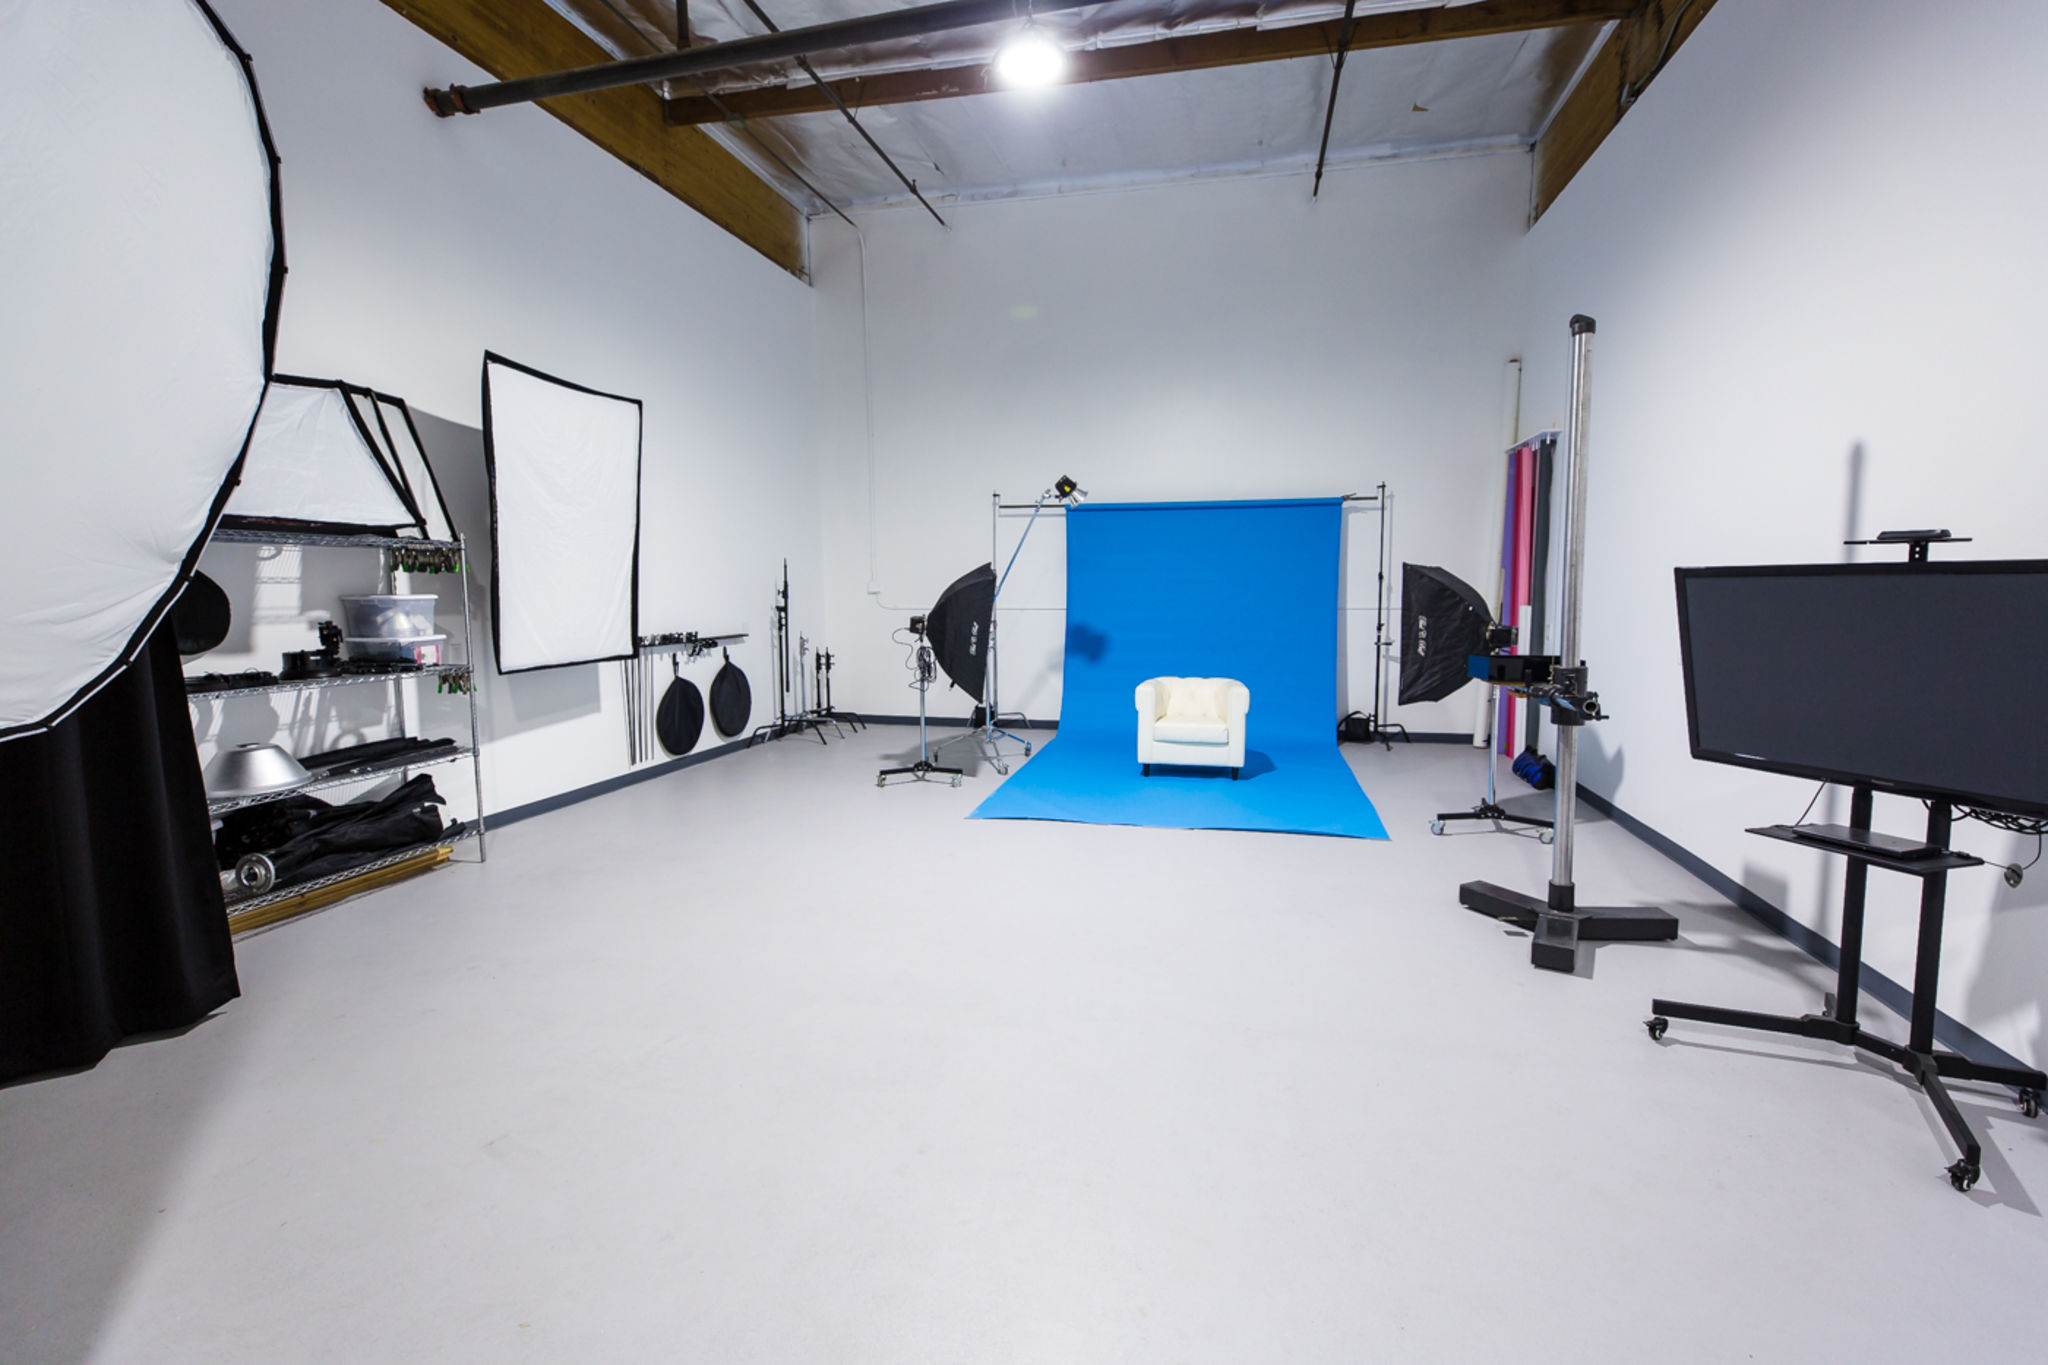 professional photography video studio with lighting equipment included